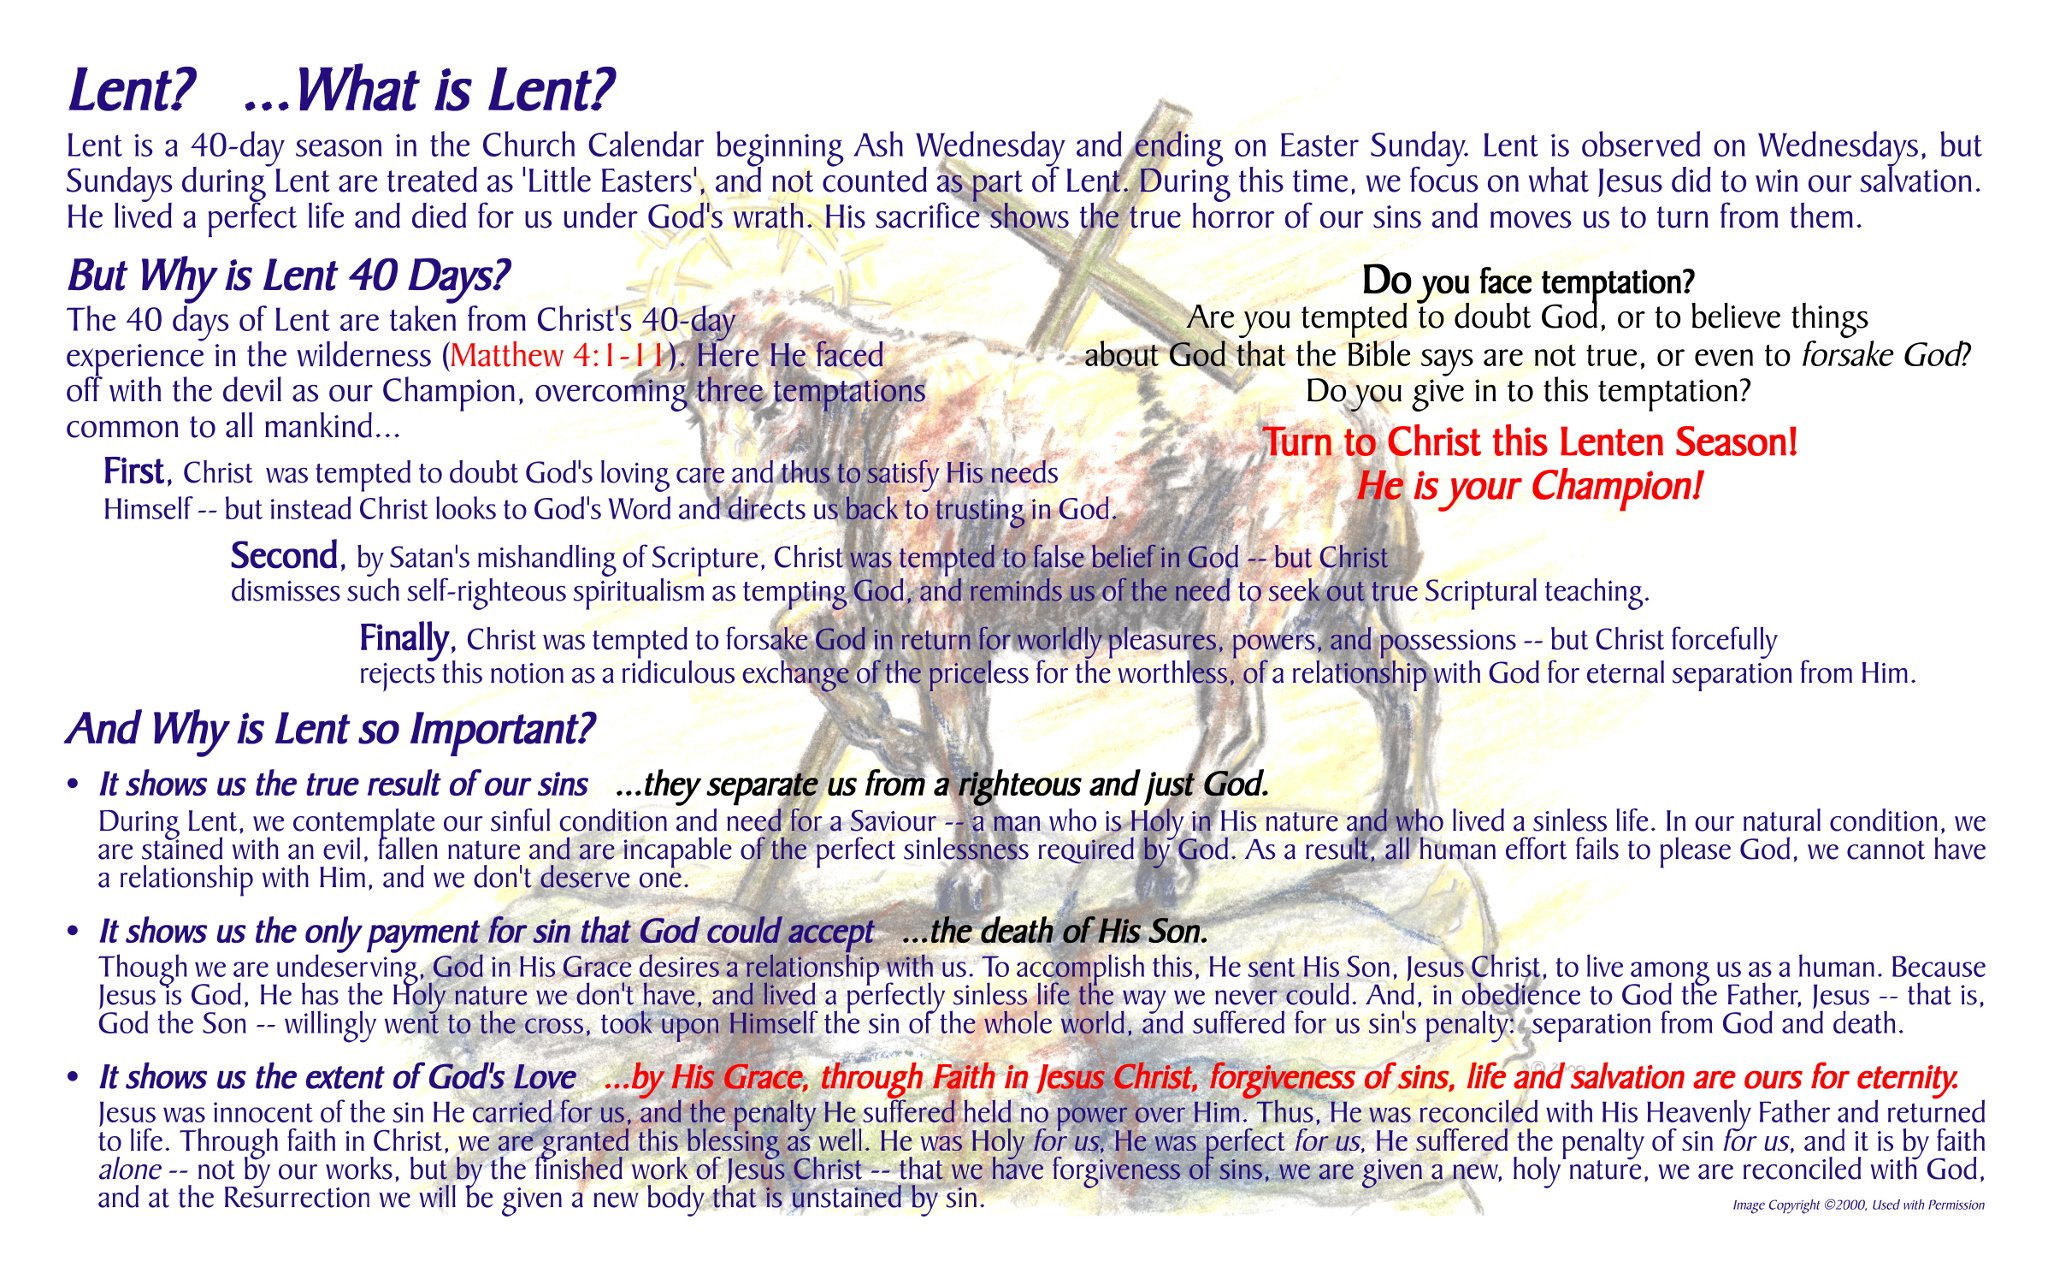 The Church Calendar and Evangelism: Lent